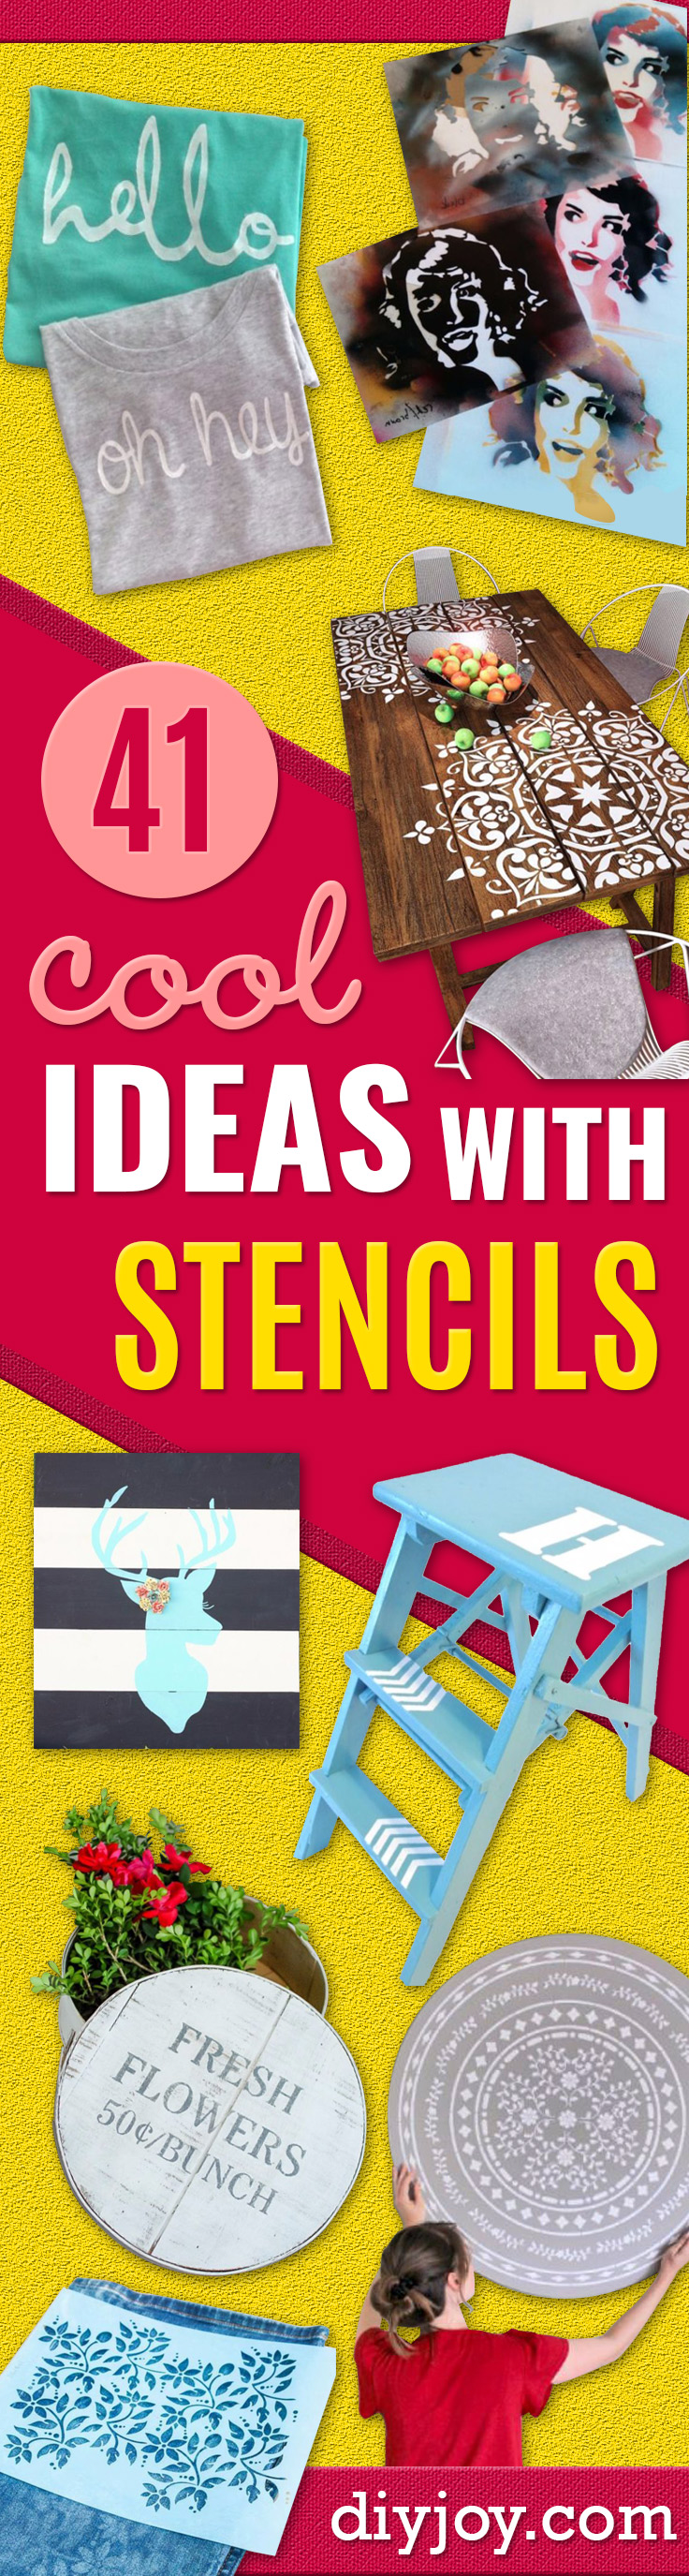 DIY Stencil Ideas - Cool and Easy Stenciling Tutorials For Making Handmade Wallpaper and Designs, Furniture Makeover Ideas and Crafty Modern Decor With Stencils - Rustic Farmhouse Paint Techniques and Step by Step Instructions for Using Stencil Art in Your Living Room, Bedroom, Bathroom and Crafts http://diyjoy.com/diy-stencil-ideas-projects